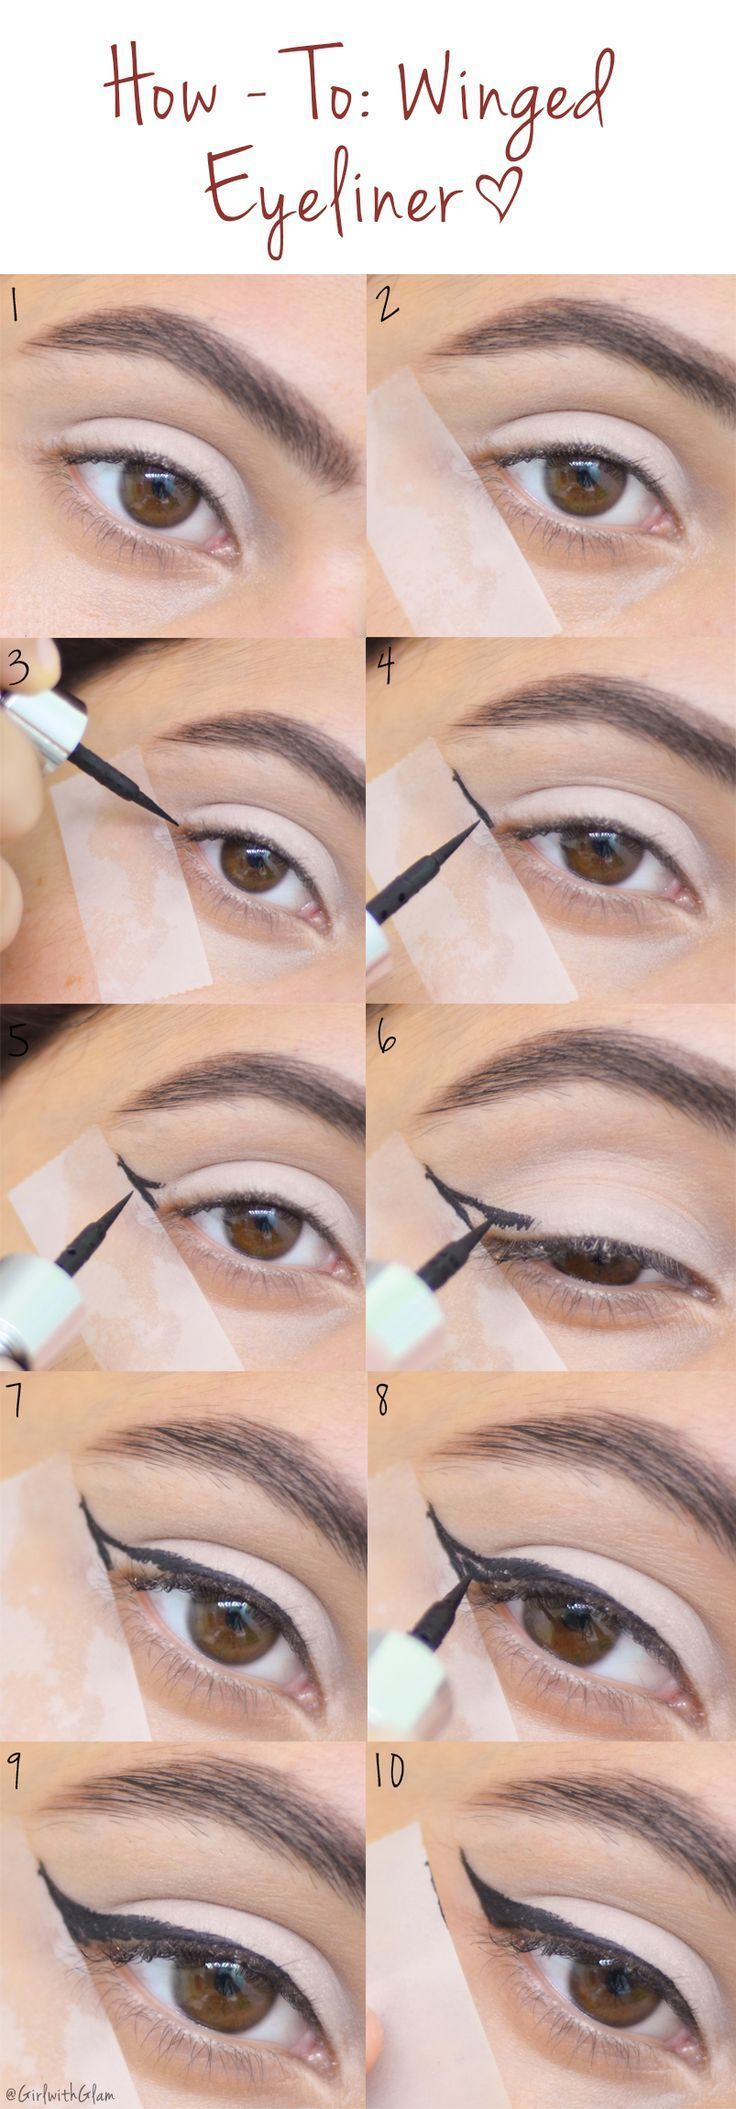 How To: Winged Eyeliner [Tape Method] An easy how to tutorial on how to do winged eyeliner using th